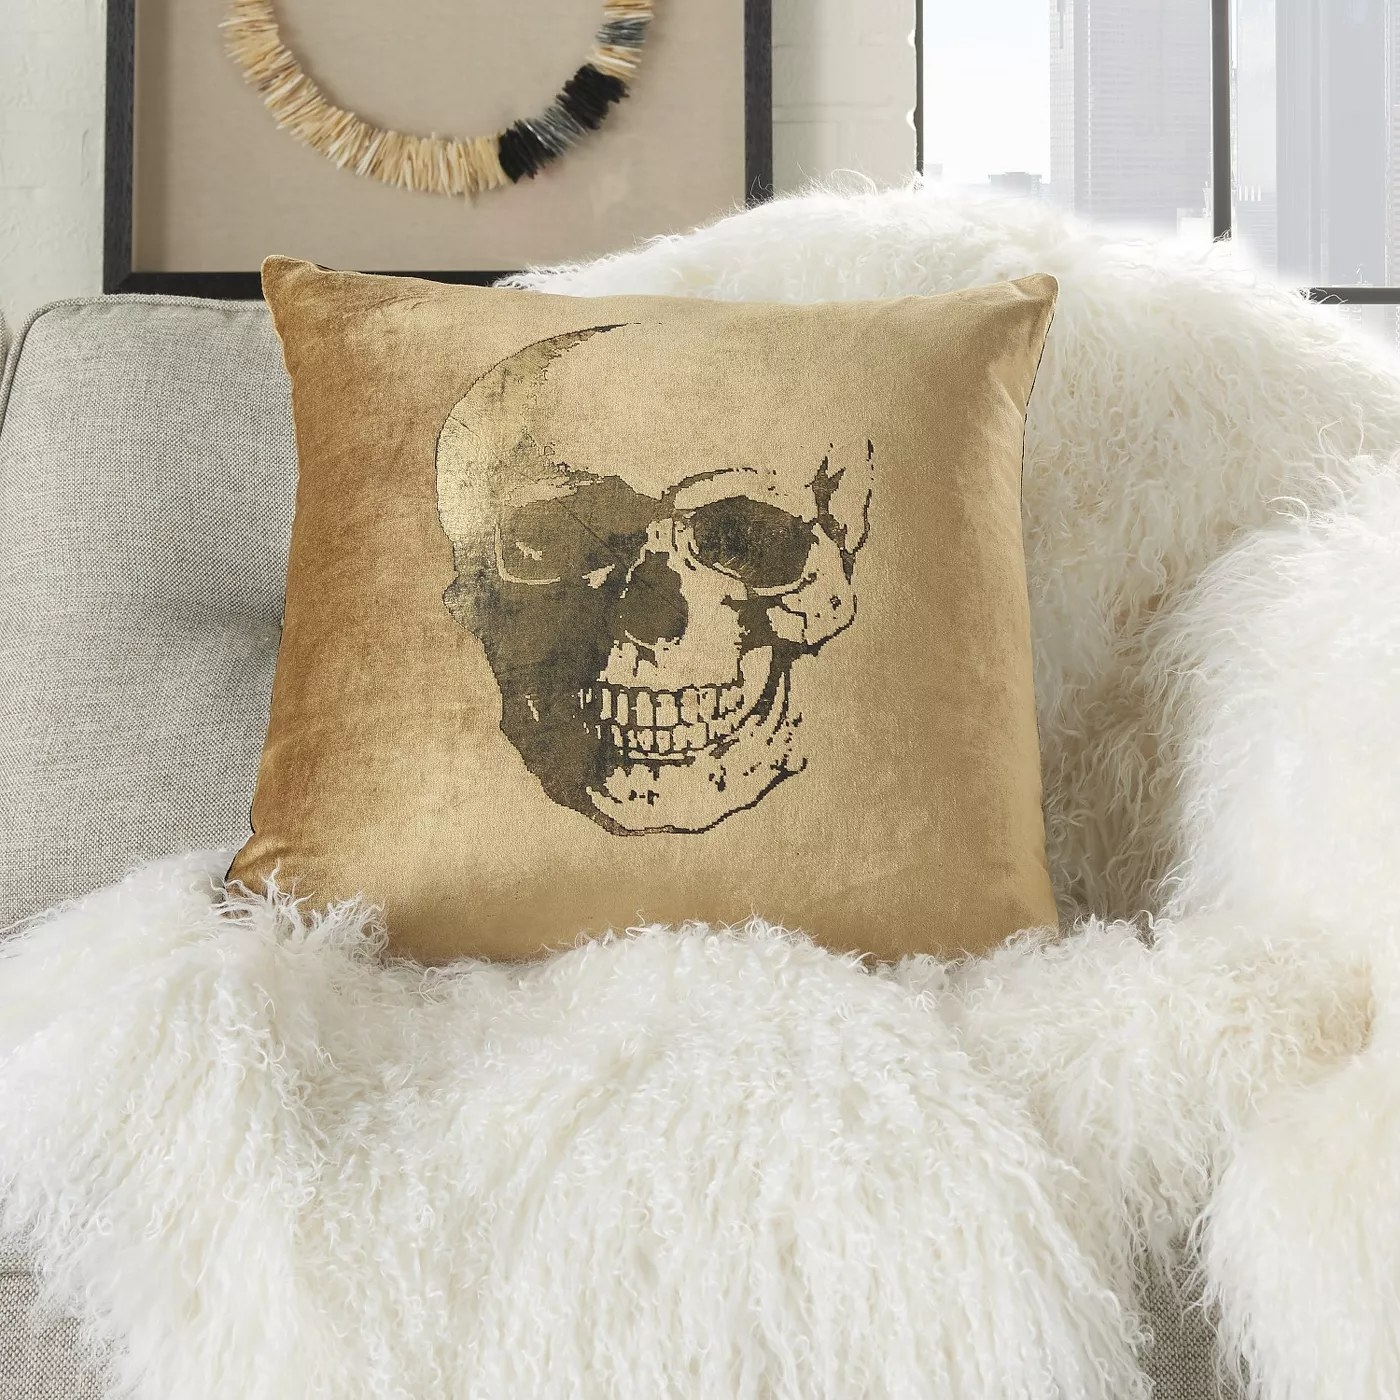 The gold pillow with a skull graphic